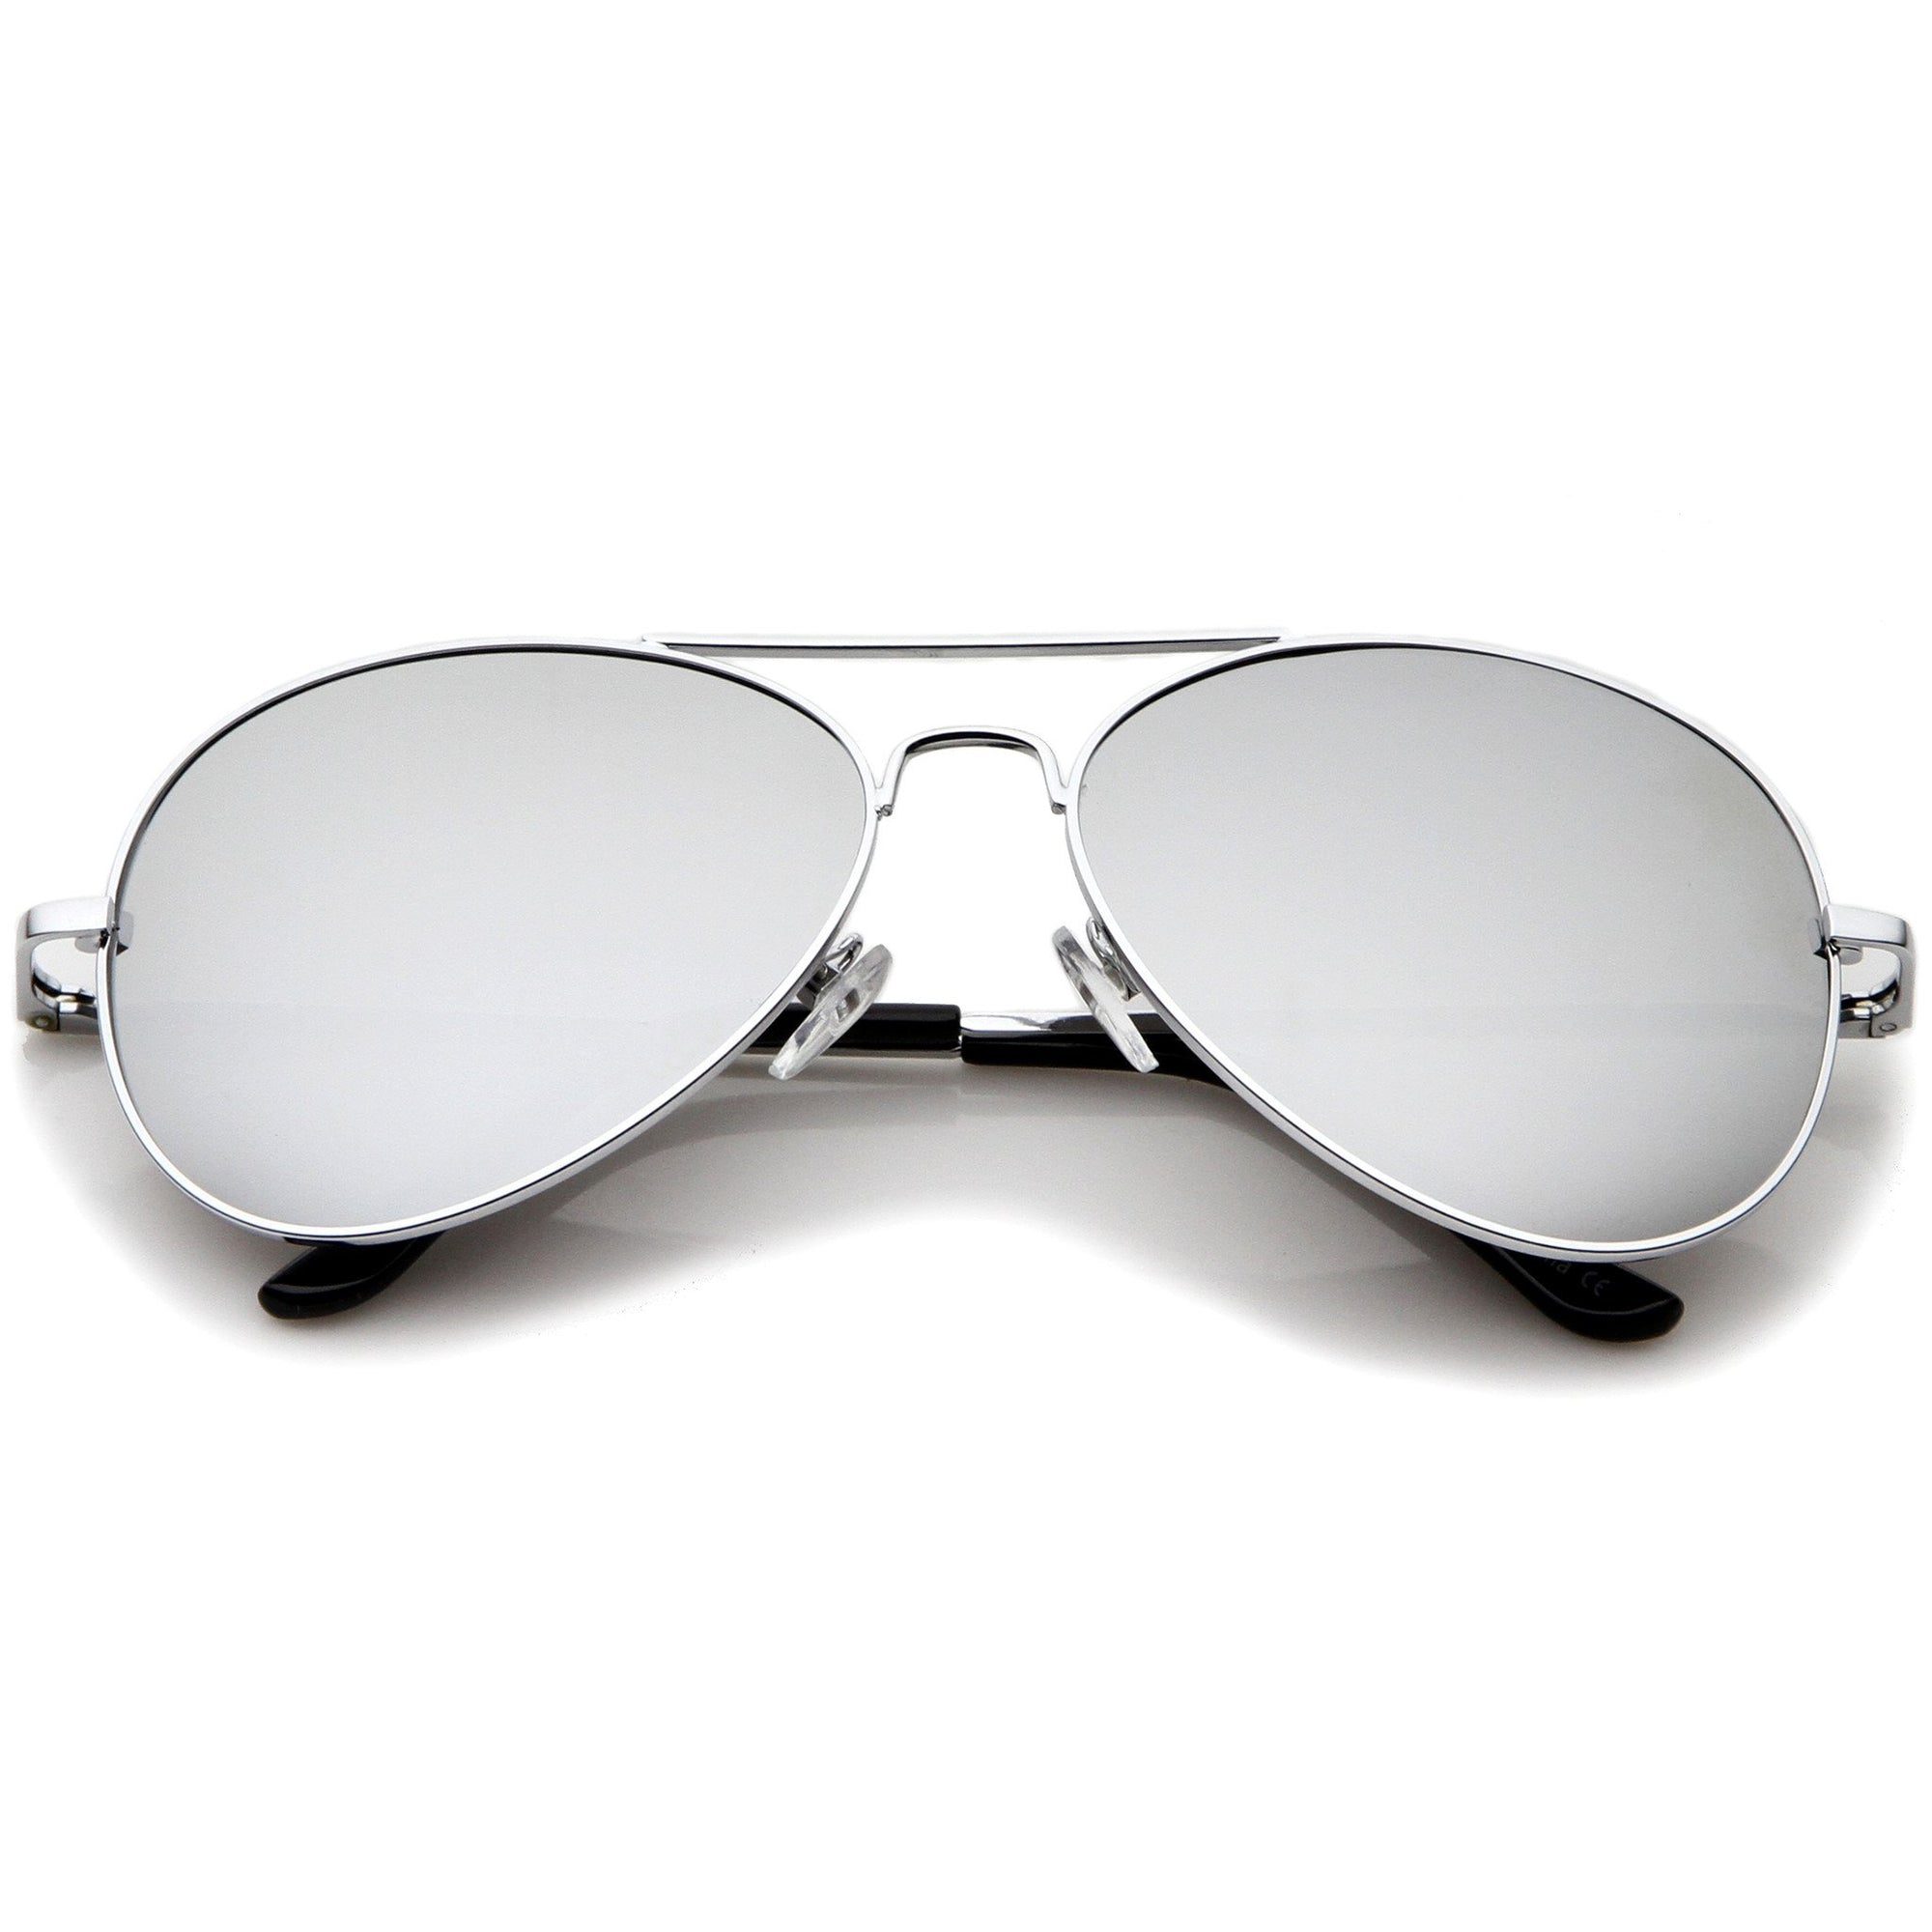 5c2109899b ... Mirrored Lens Metal Aviator Sunglasses 1375 58mm · Silver